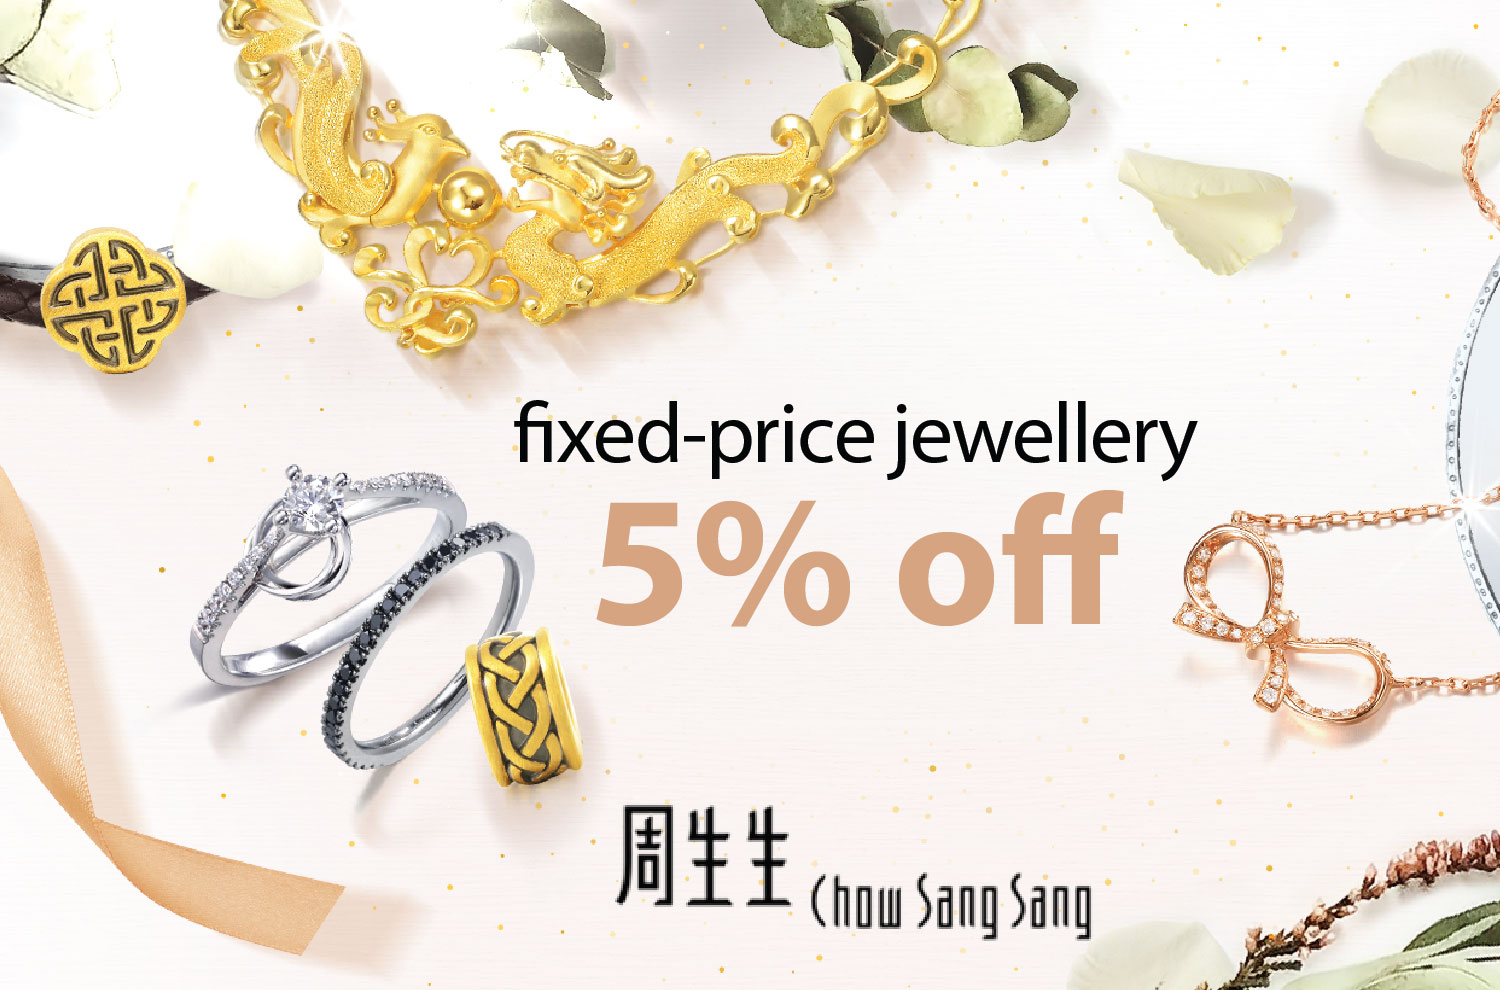 5% off on fixed-price jewellery for Hotel Guests of iclub Hotels